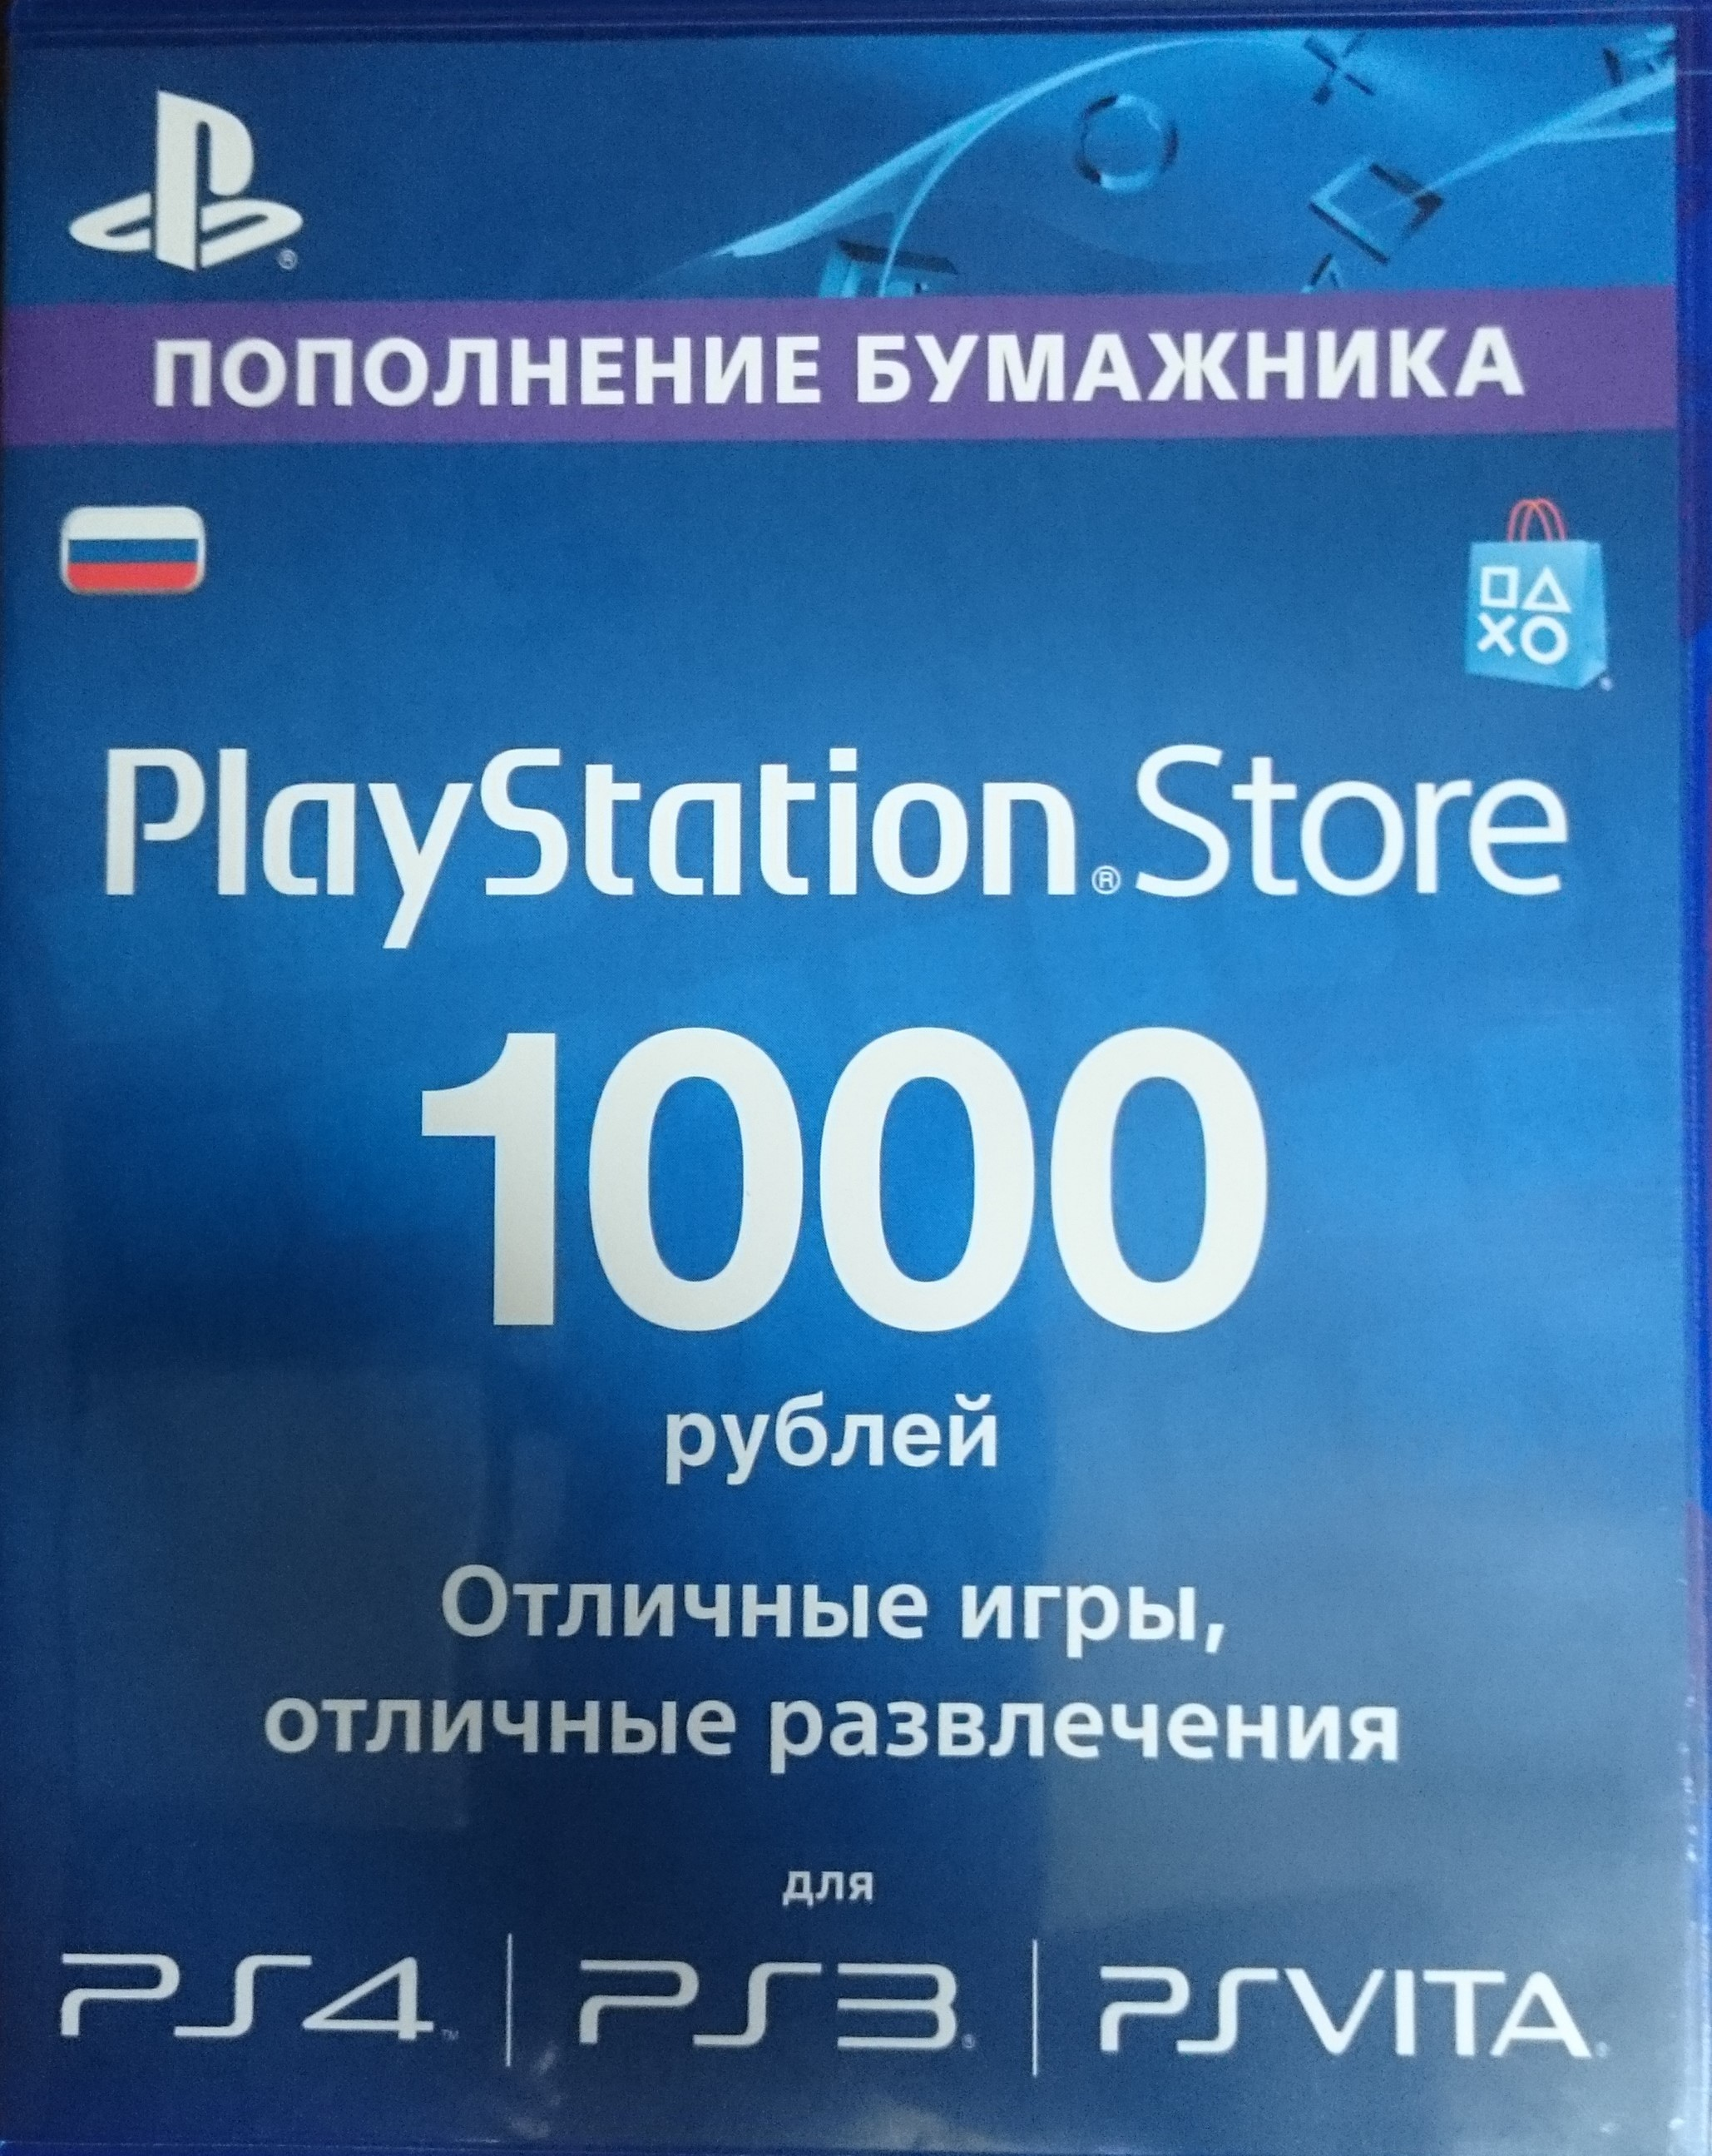 1000 rubles PSN PlayStation Network (RUS) Scan instantl